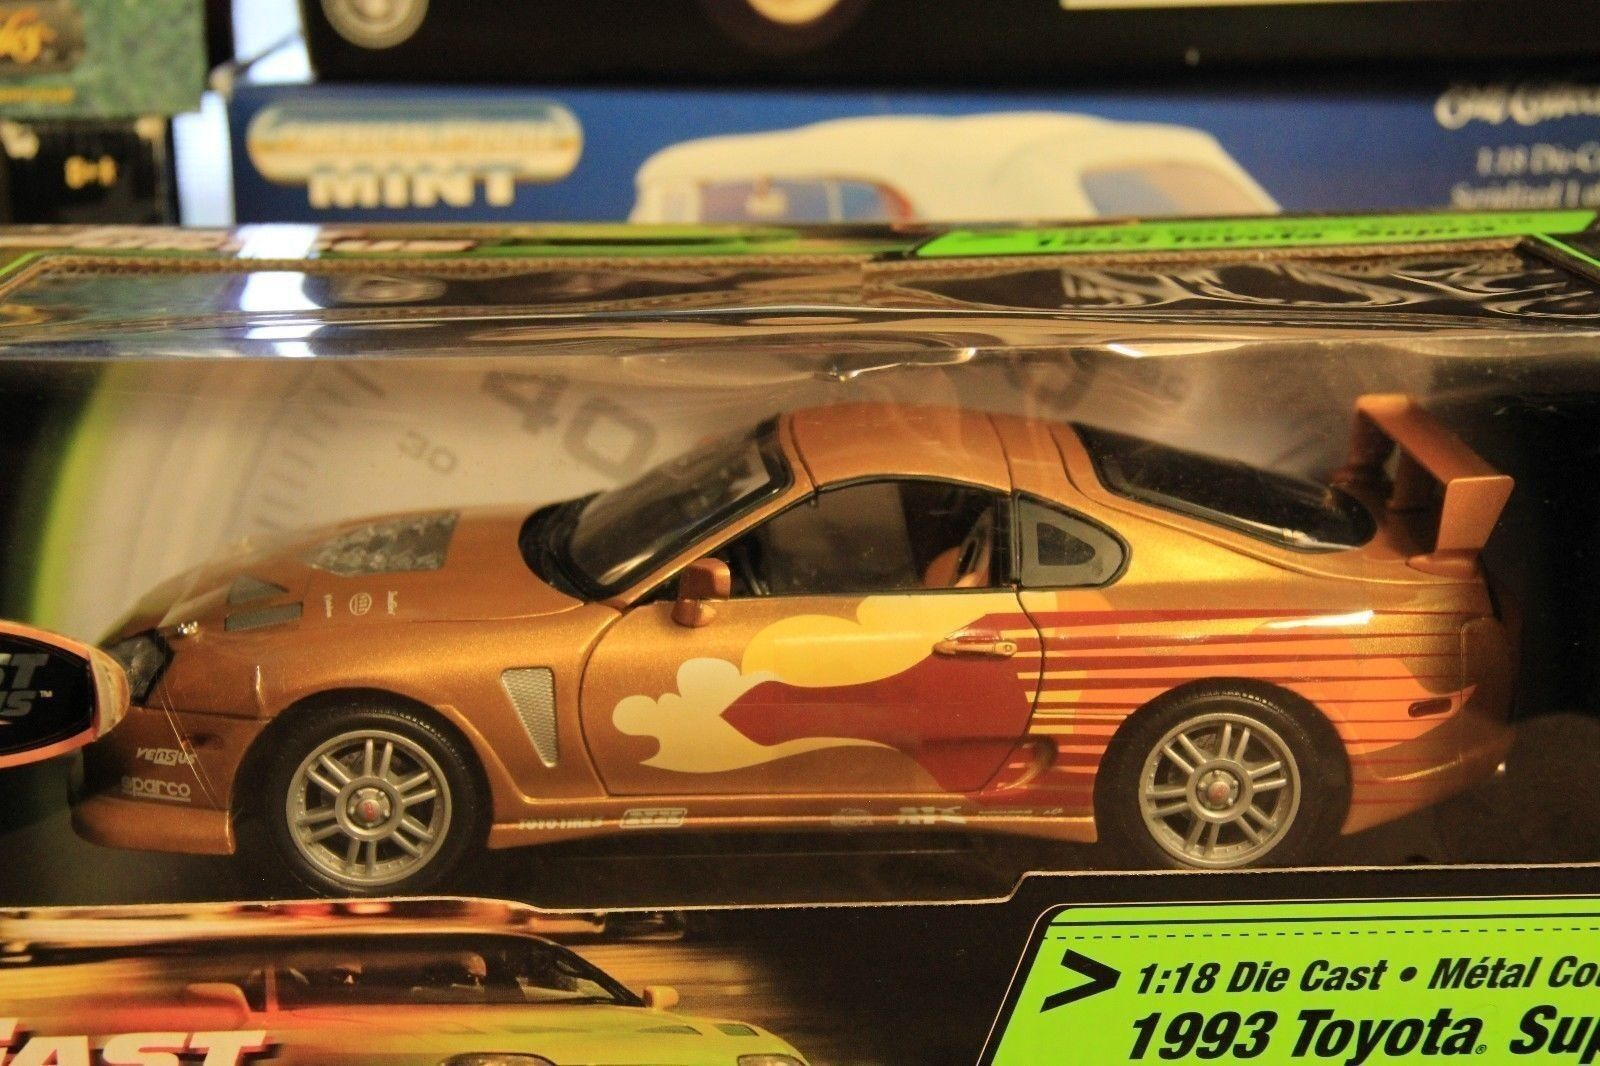 1:18 ERTL quasi Furious Paul Walker 1993 TOYOTA SUPRA ORO-NUOVO IN SCATOLA ORIGINALE